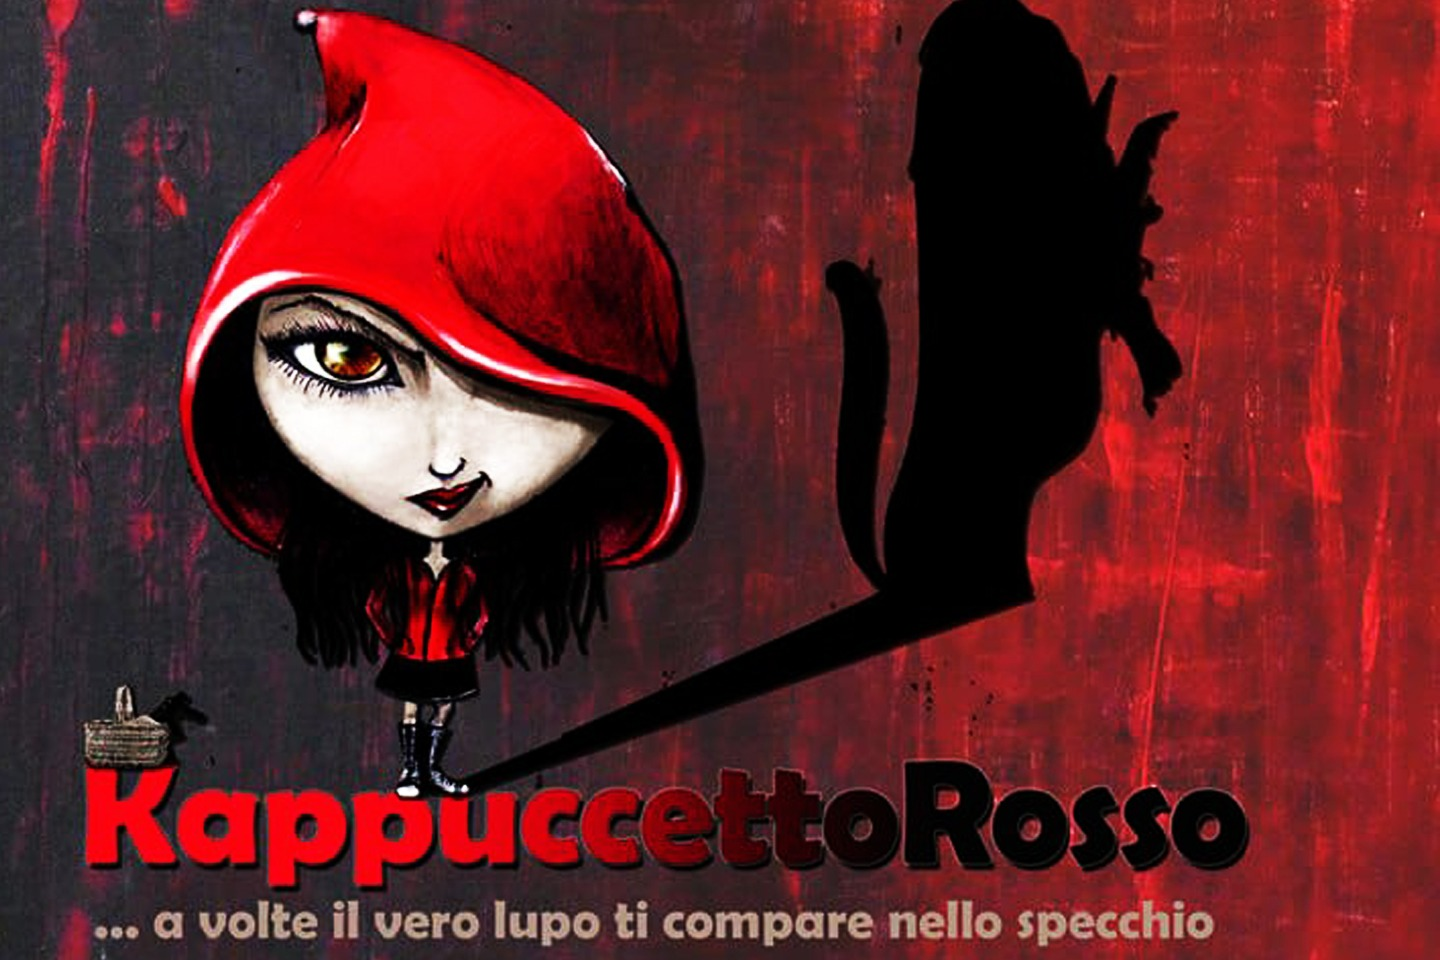 Kappuccetto Rosso - 1_Front